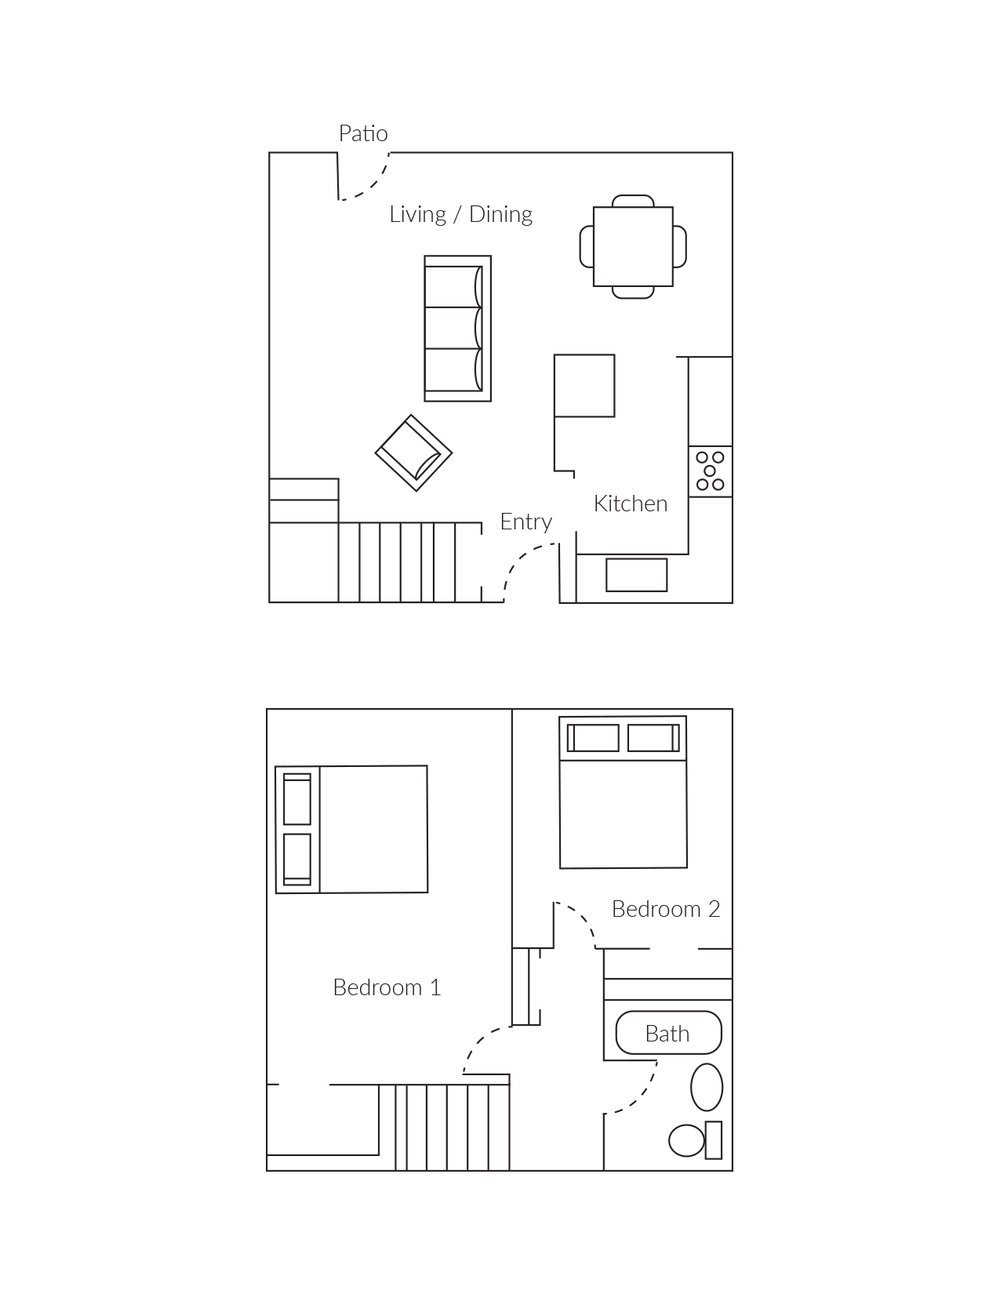 2 bedroom, 2 bathroom townhome